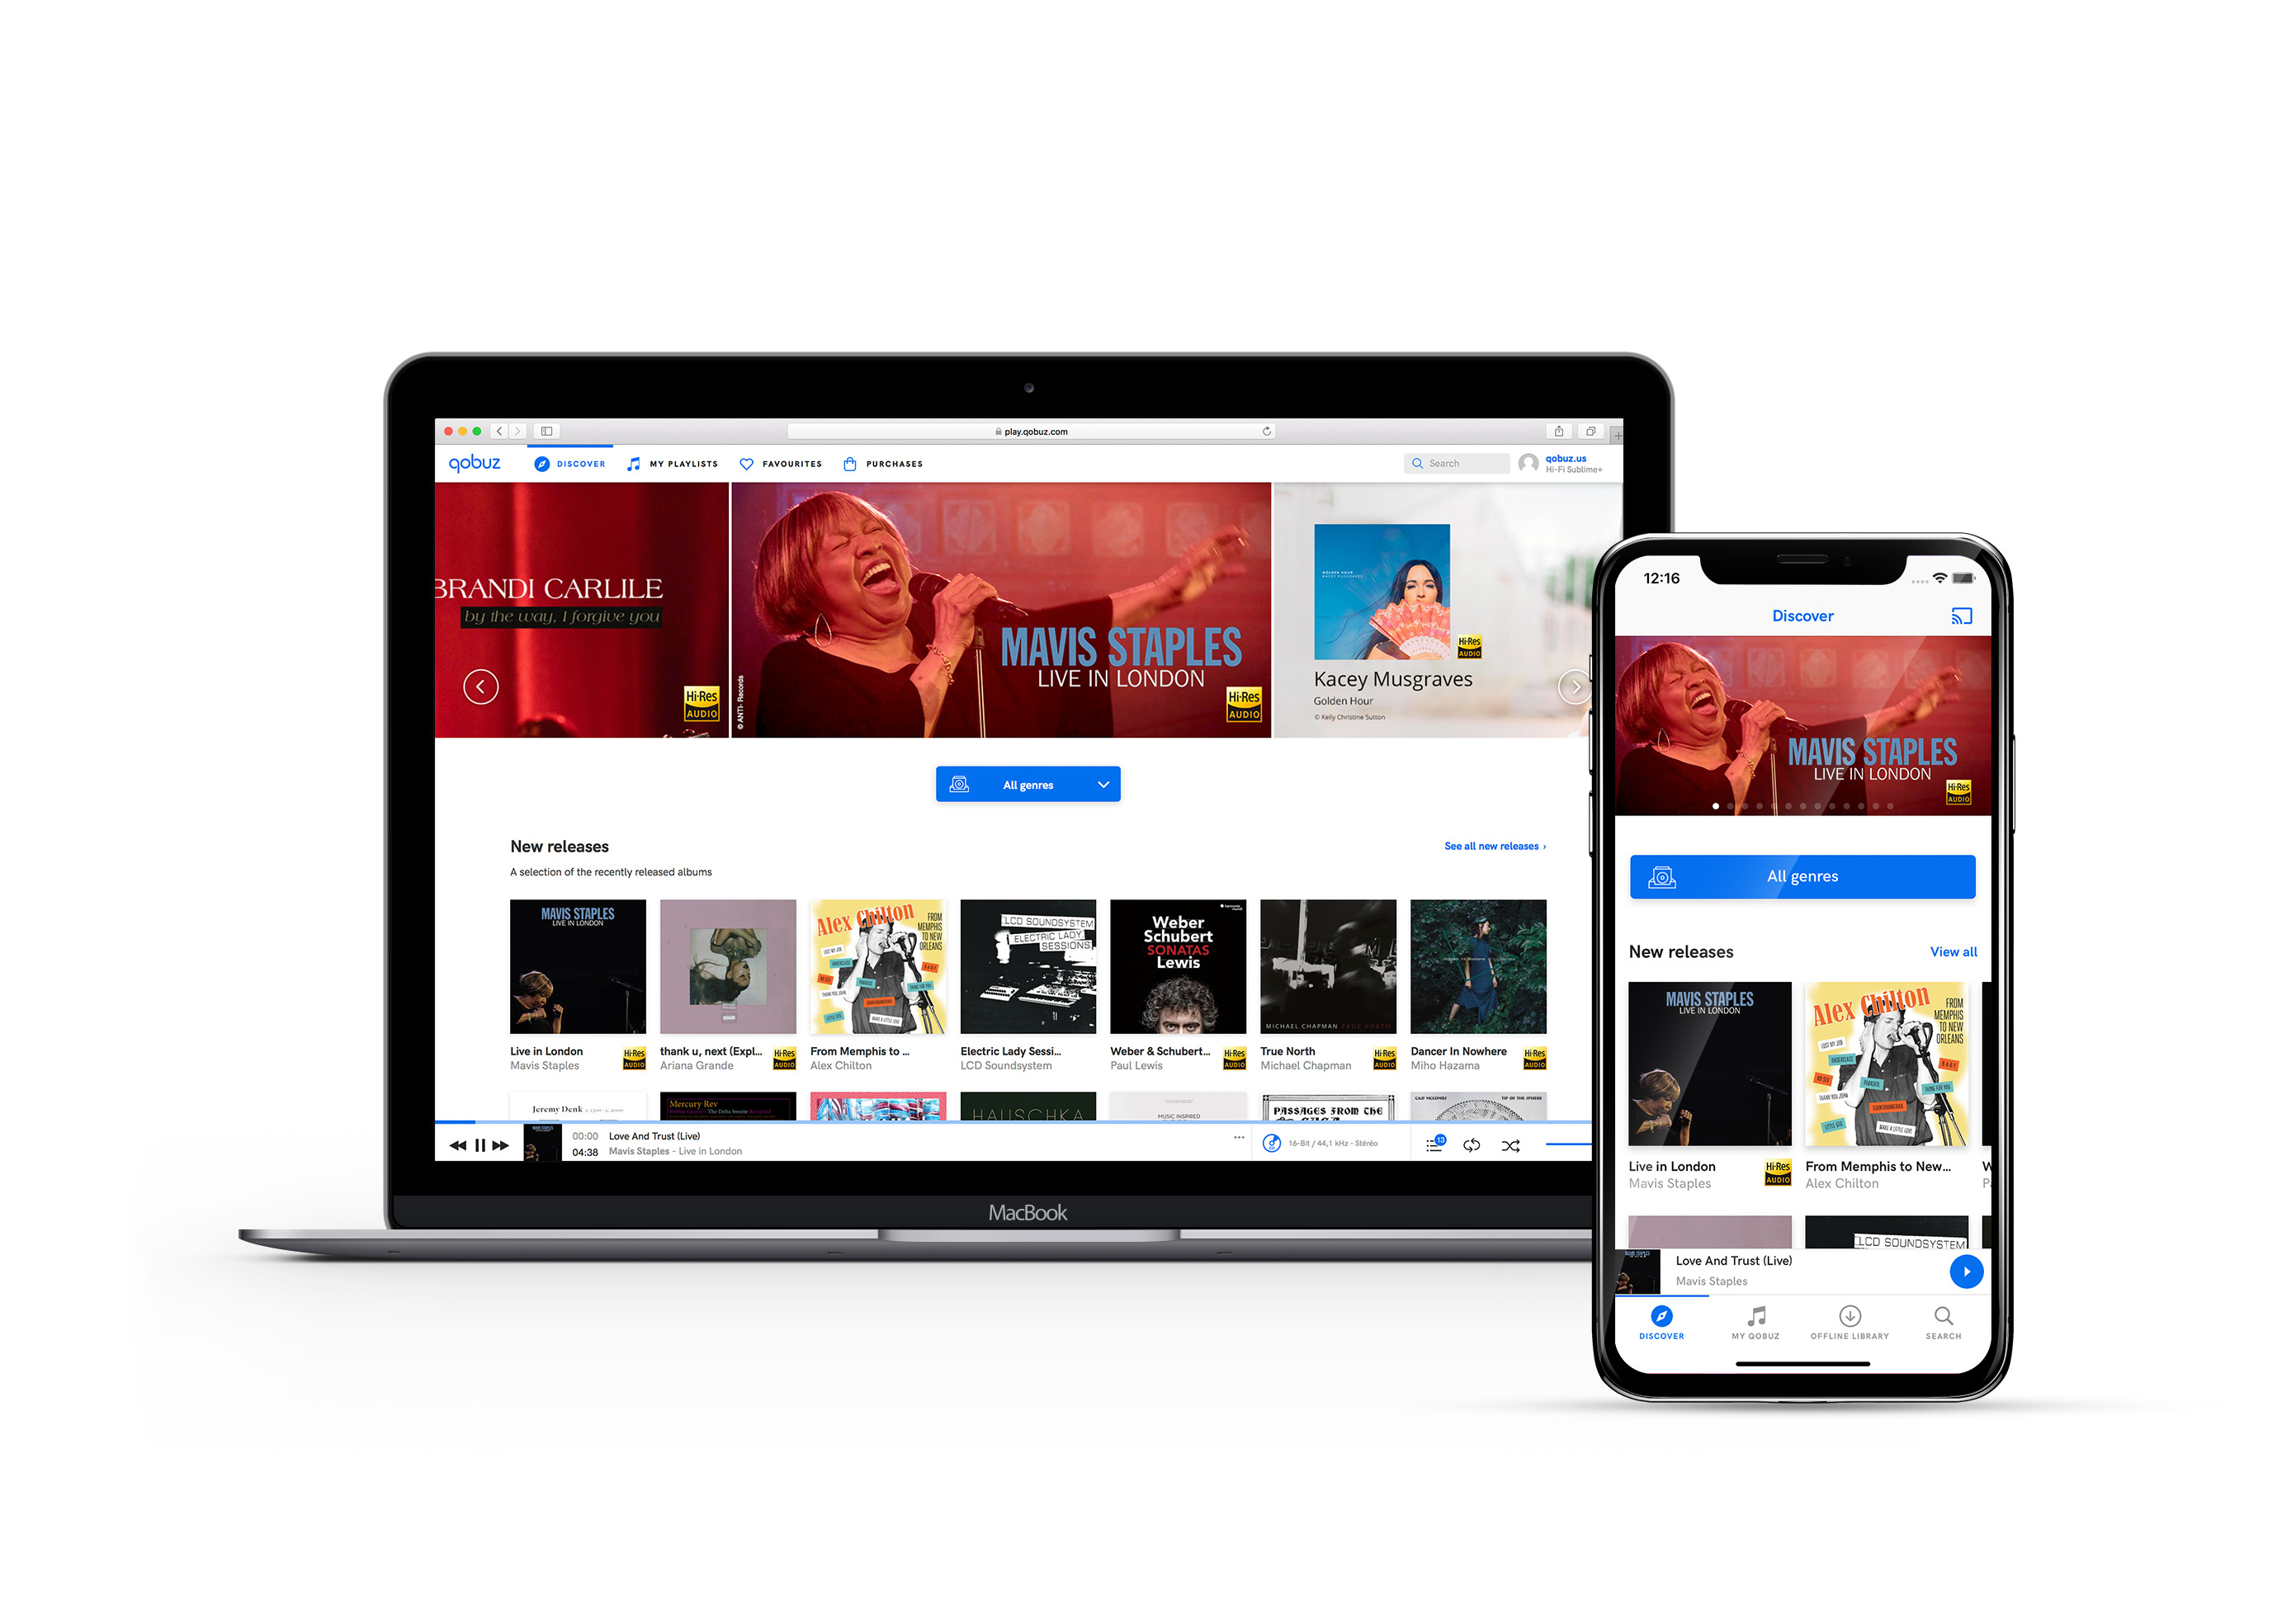 Qobuz Lowers Pricing, Other Streaming Services Respond